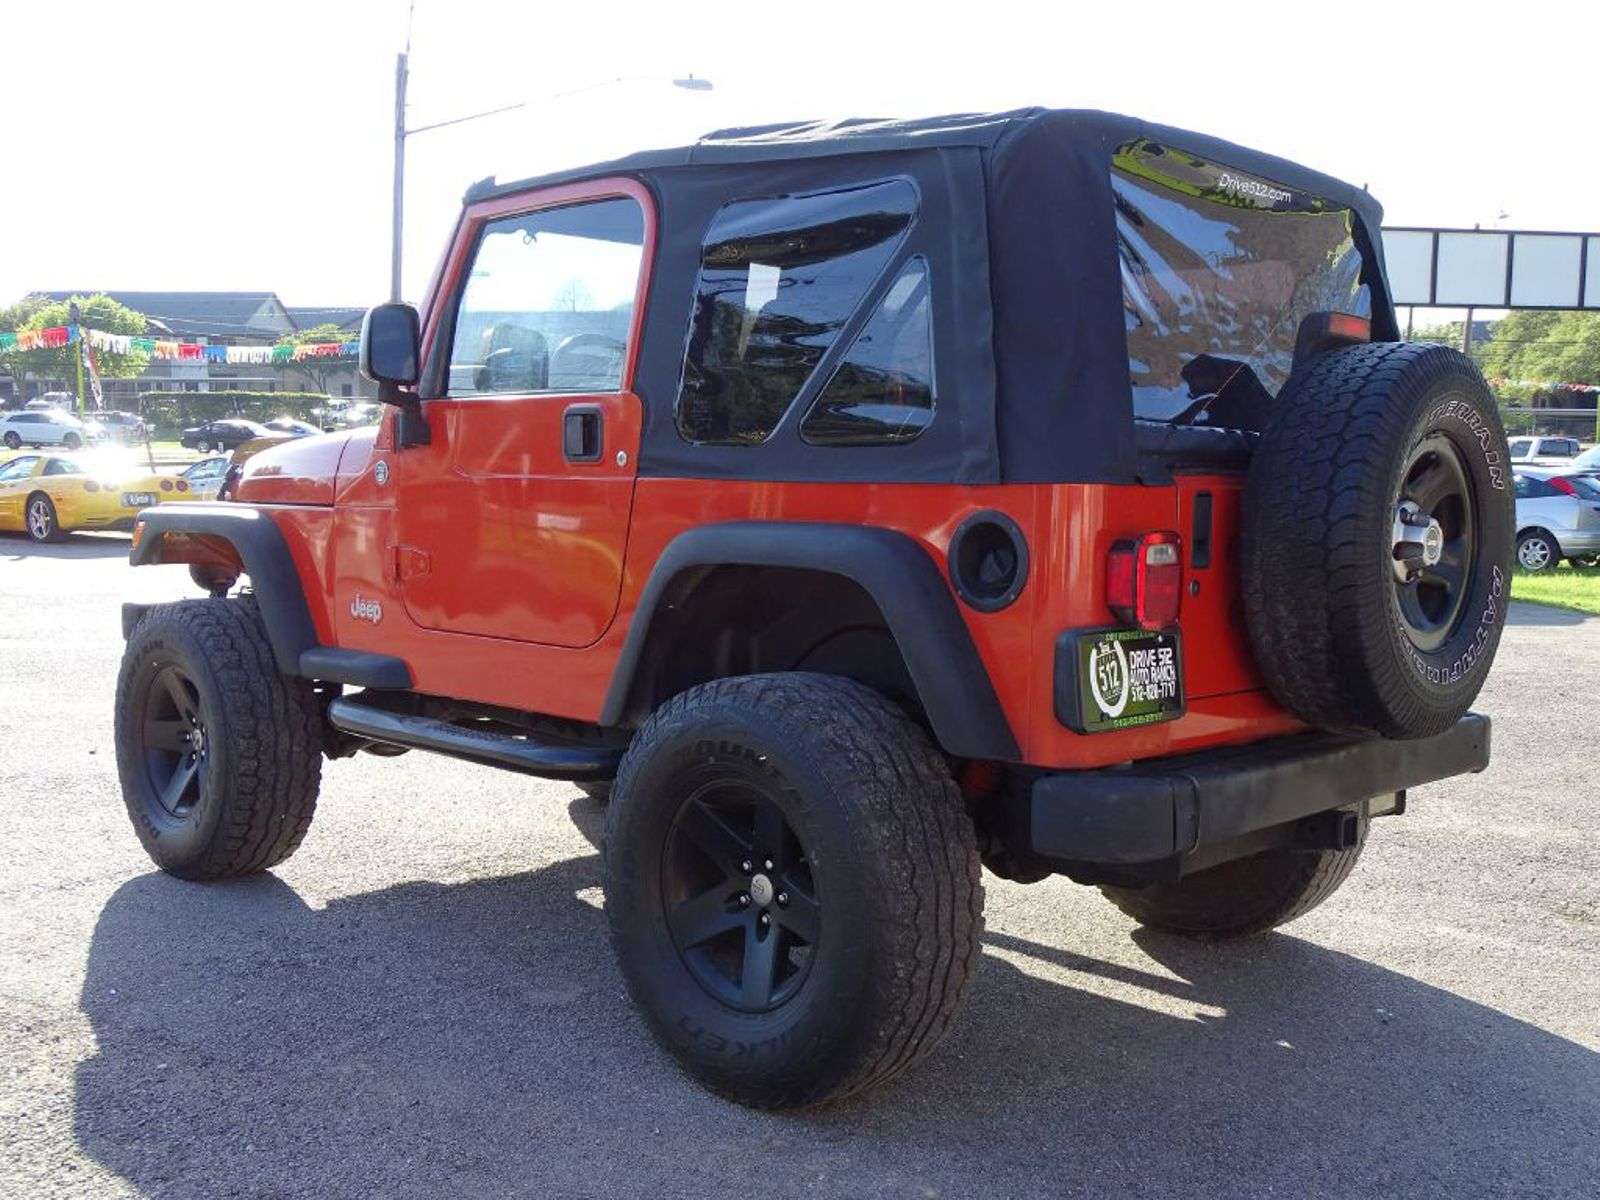 wrangler jeep austin in sport sale click unlimited nassau enlarge details listings car for images to